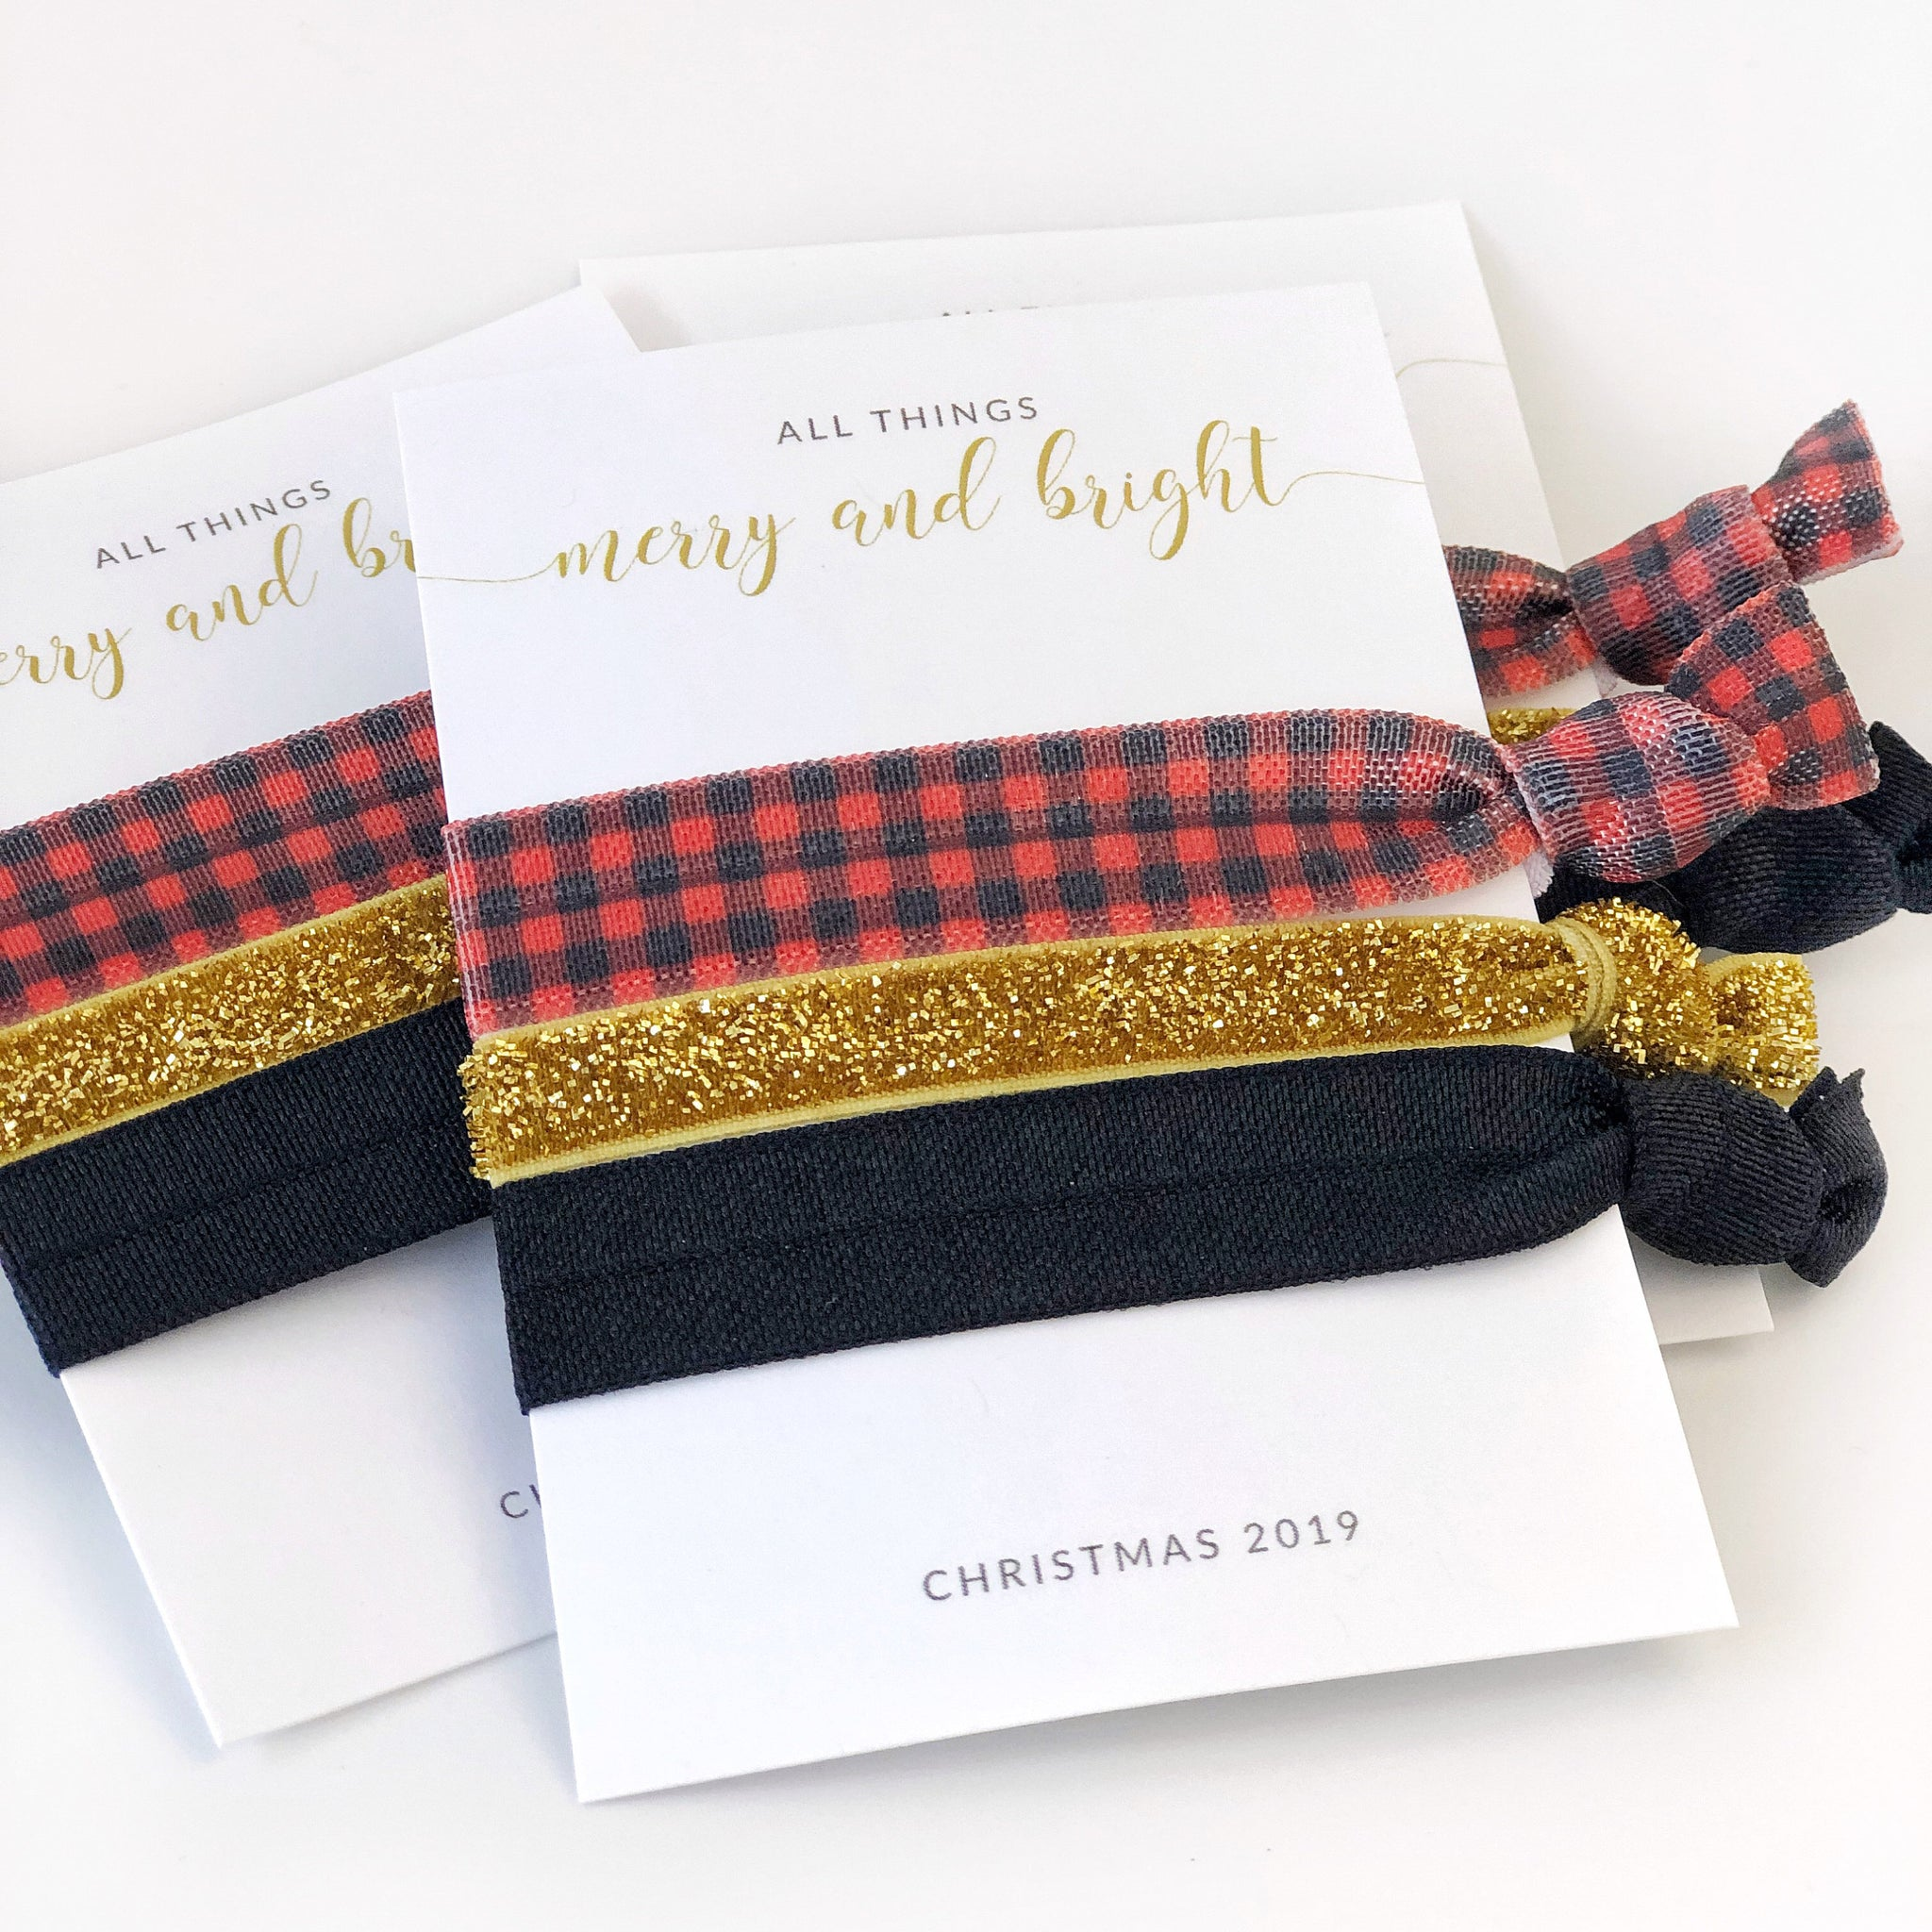 Buffalo Plaid Christmas Hair Ties, Christmas Gifts for Friends, Christmas Party Favors for Women, Stocking Stuffers Girl Friend Gift - BP100